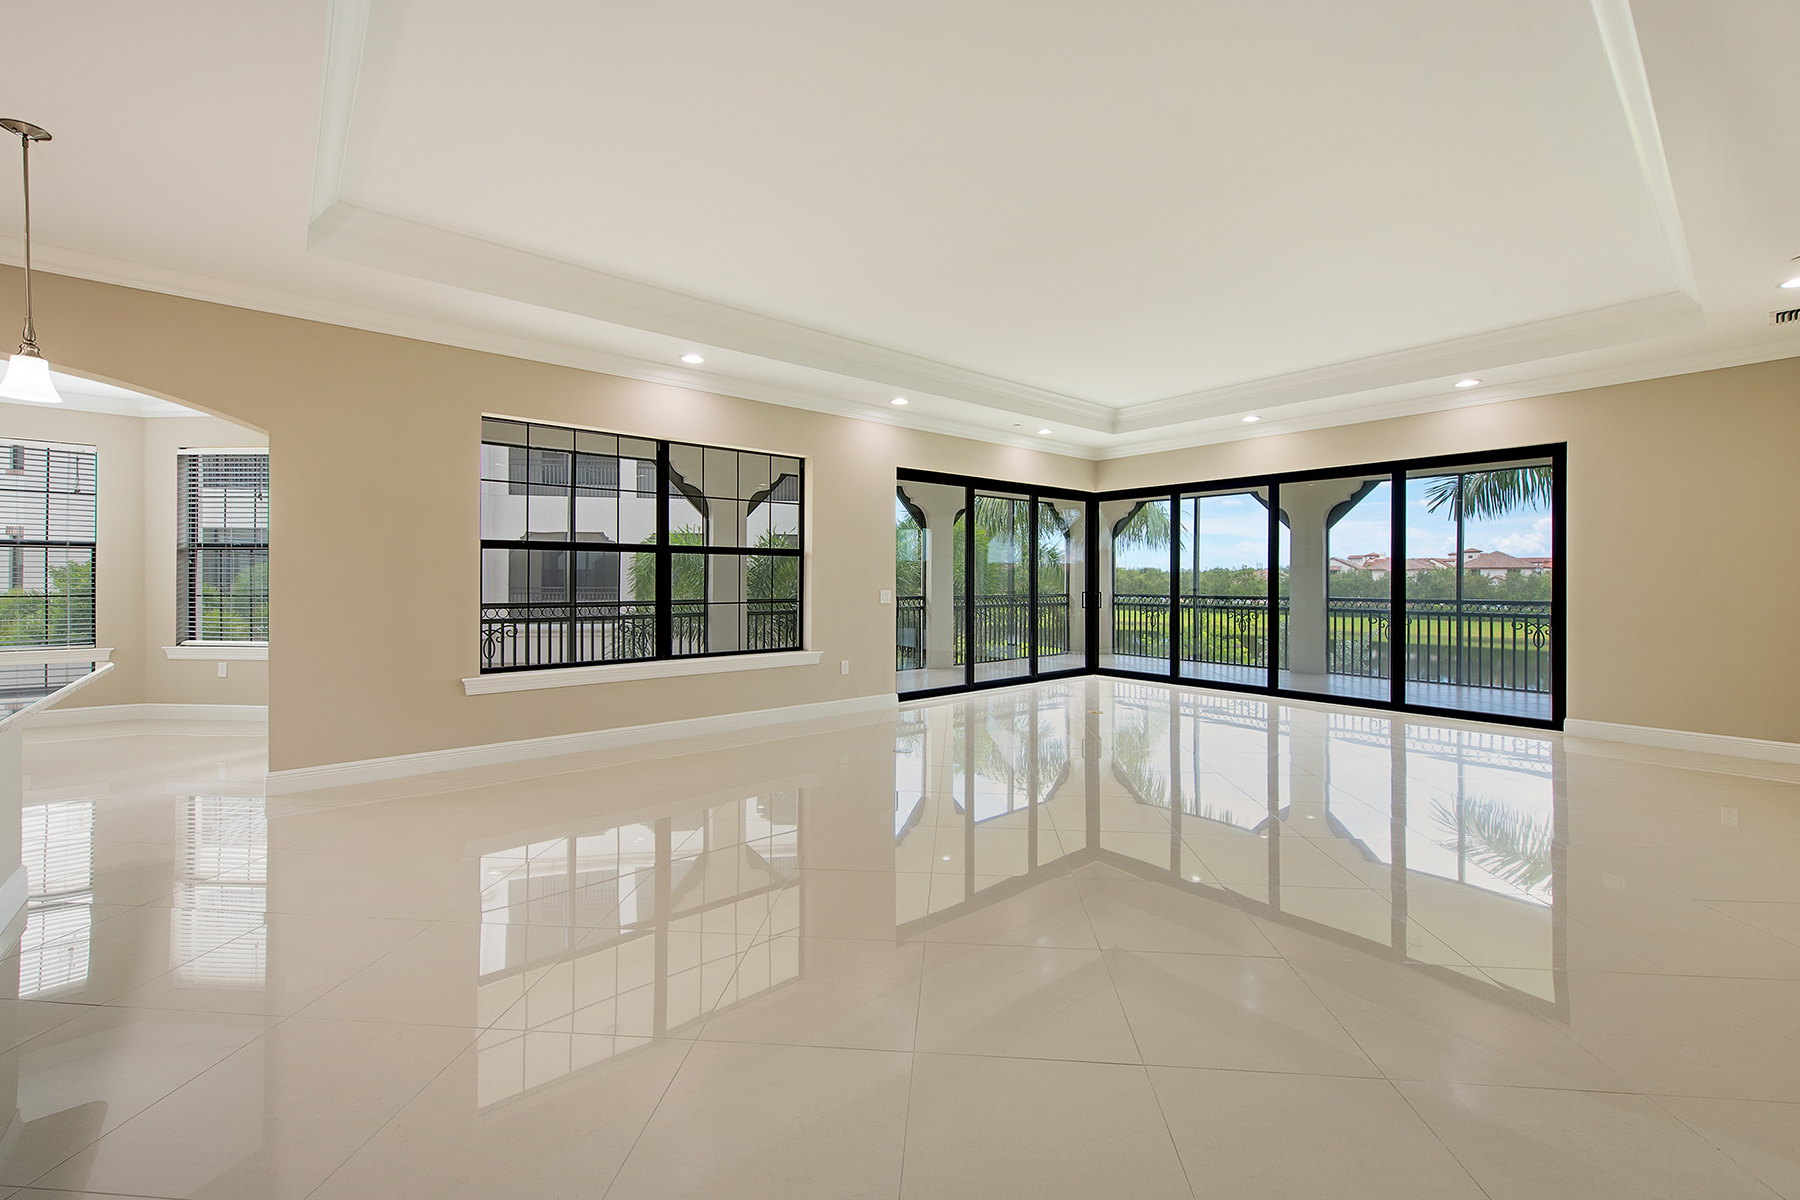 Condominium for Sale at TALIS PARK - CARRARA 16437 Carrara Way 102, Naples, Florida 34110 United States